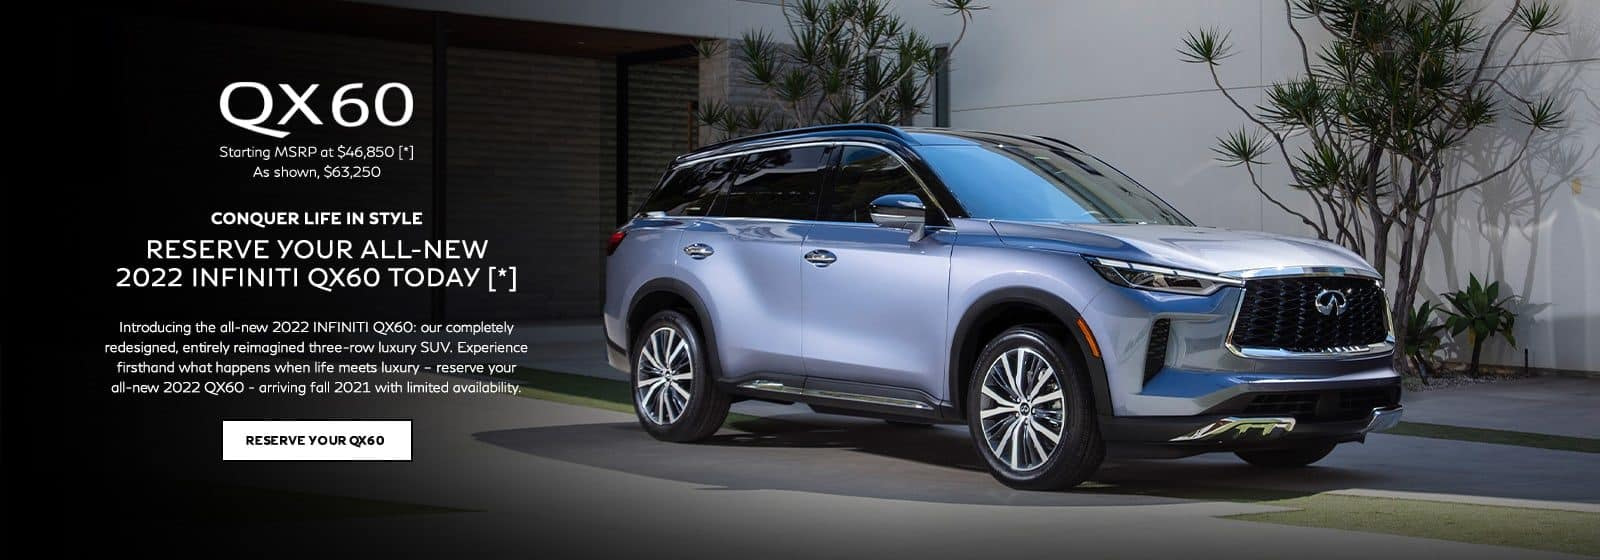 Reserve Your All-New 2022 INFINITI QX60 today